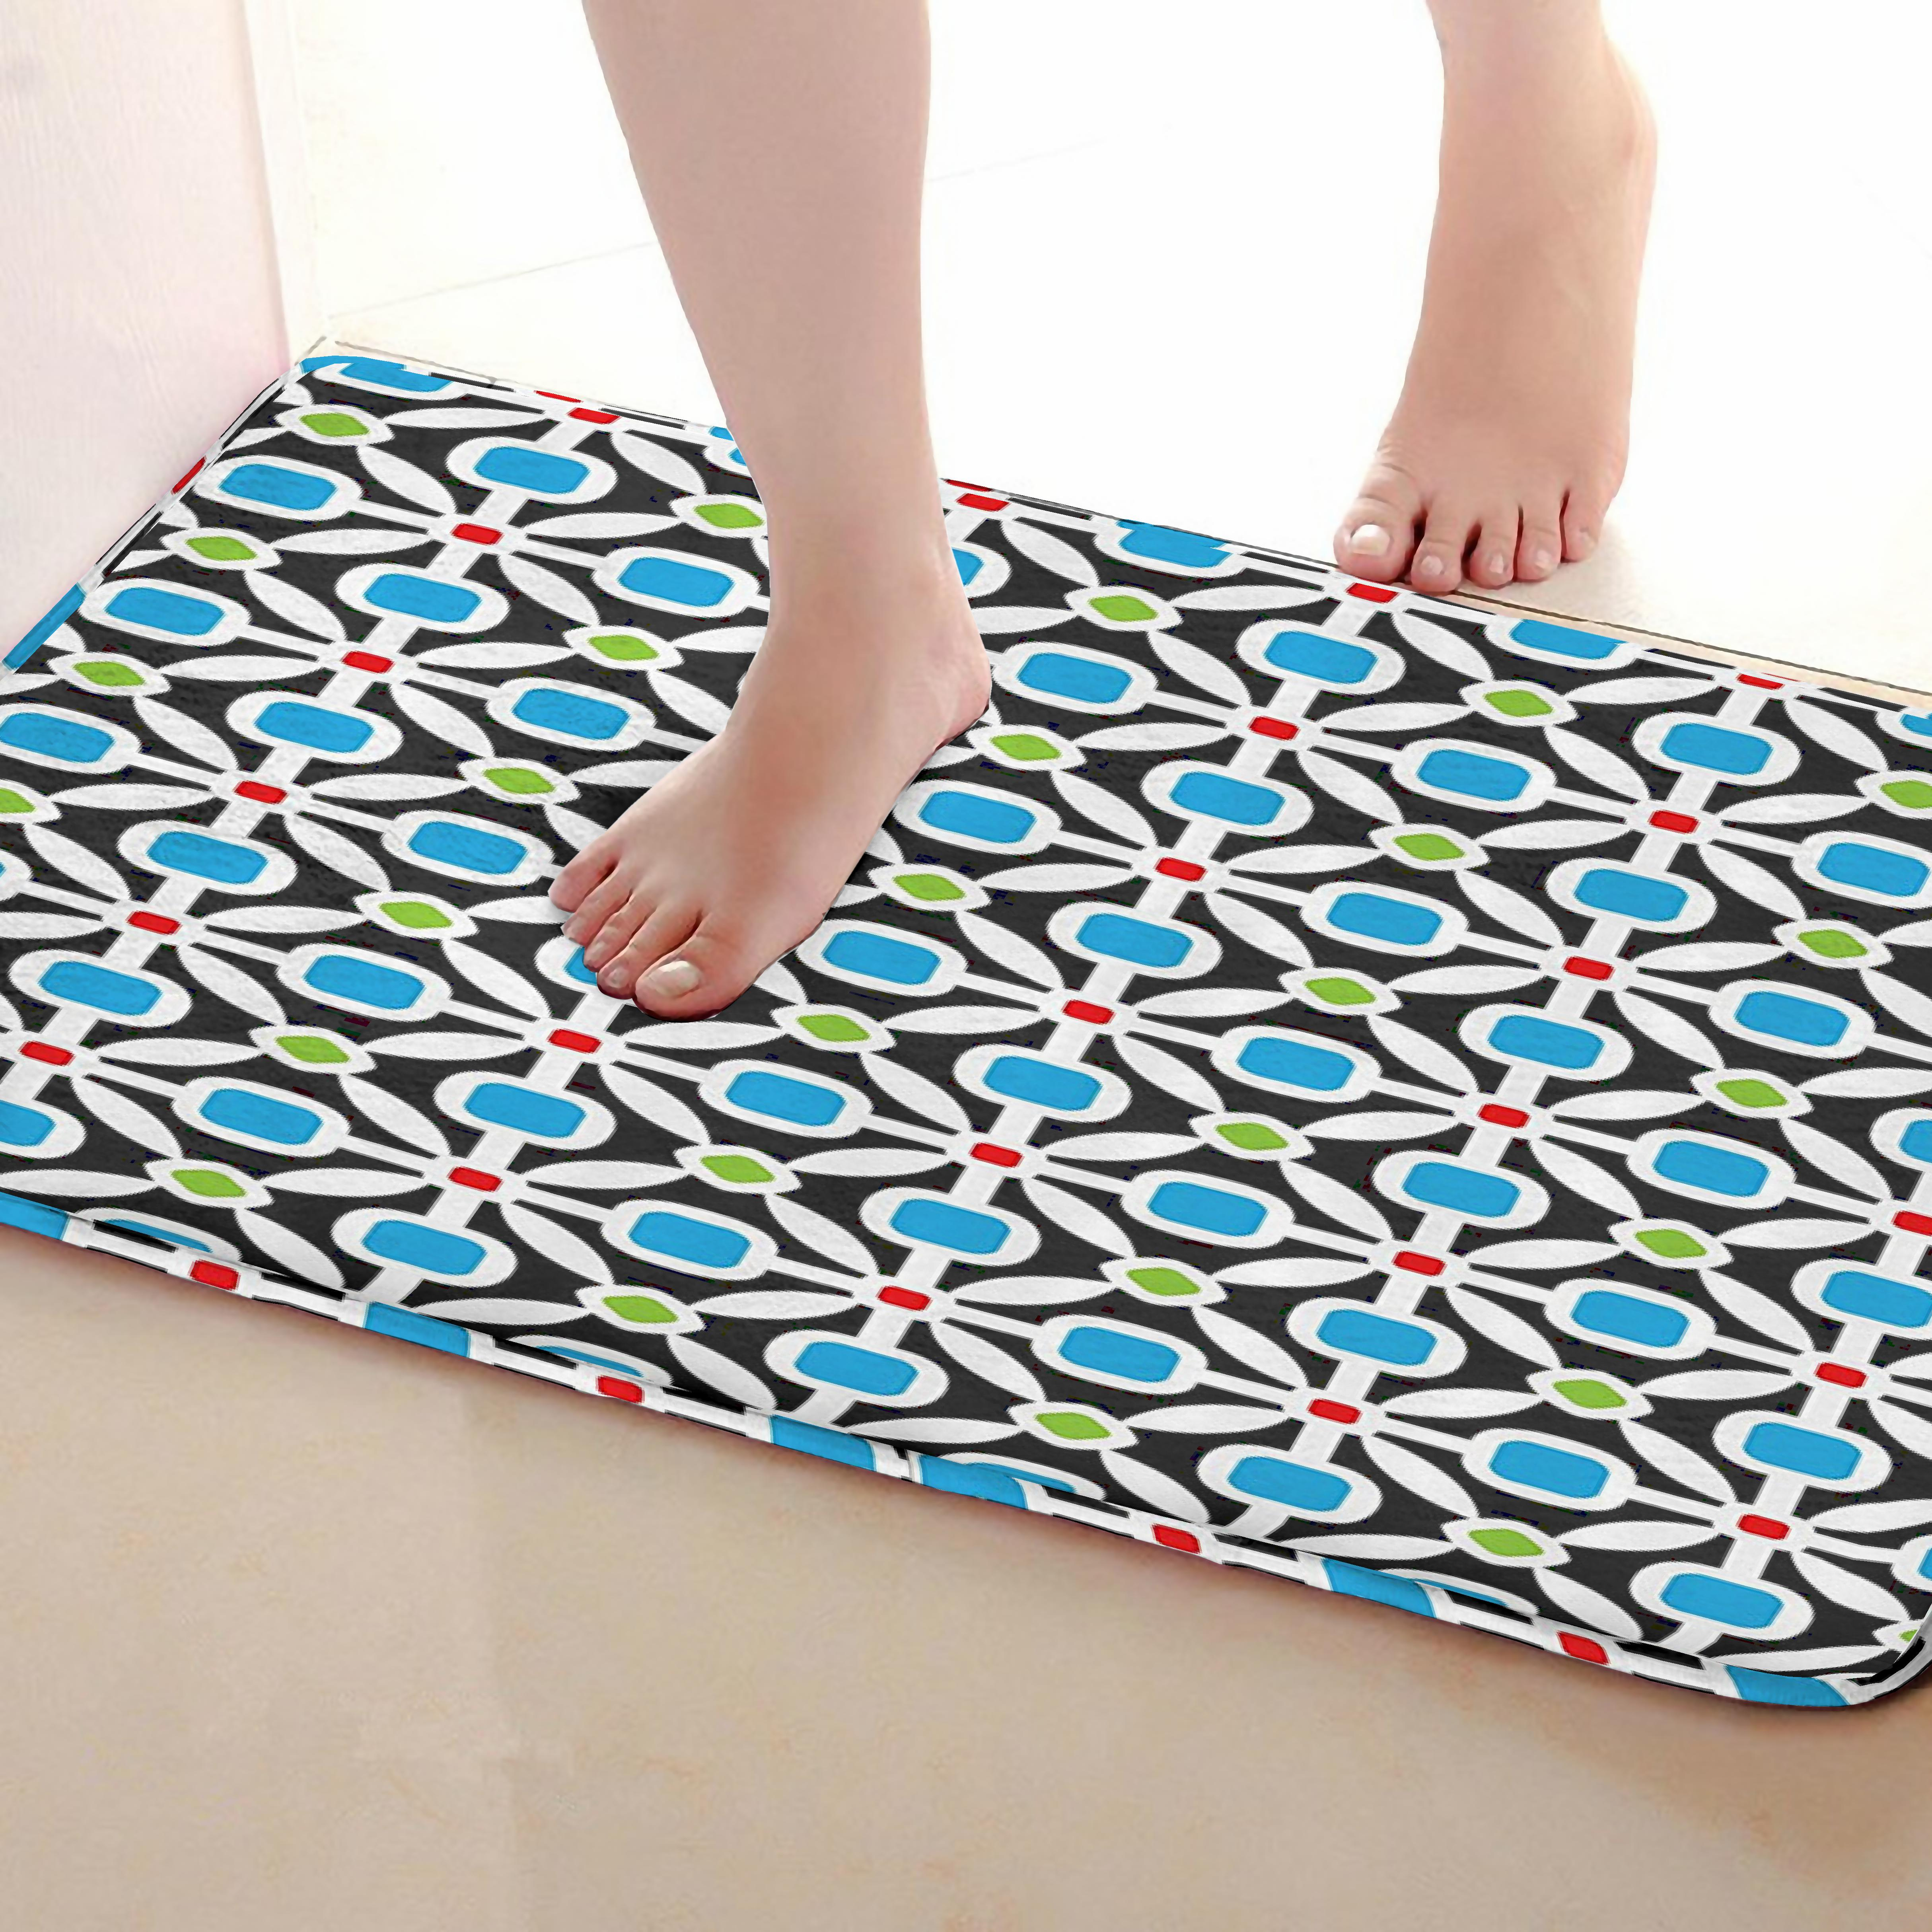 Shape Style Bathroom Mat,Funny Anti skid Bath Mat,Shower Curtains Accessories,Matching Your Shower Curtain